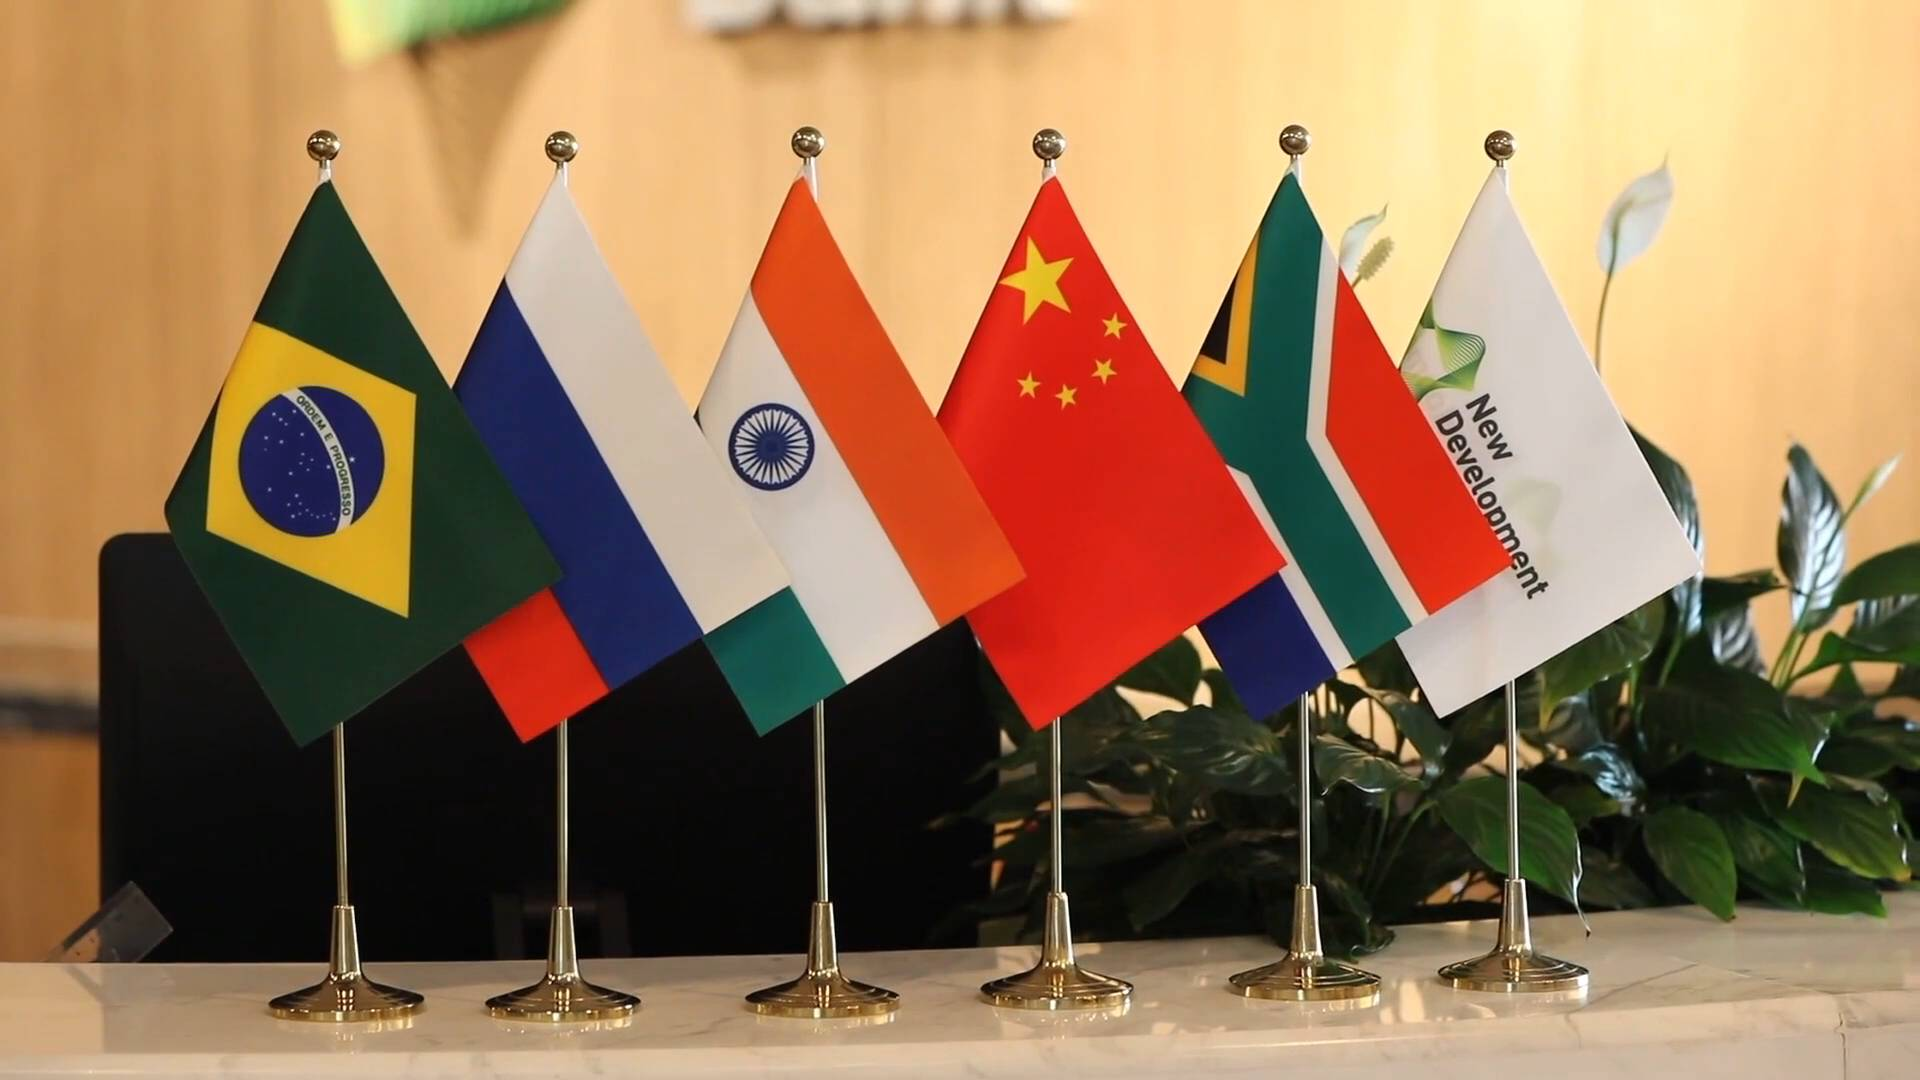 GLOBALink | BRICS is one of very fine global institutions: Indian expert